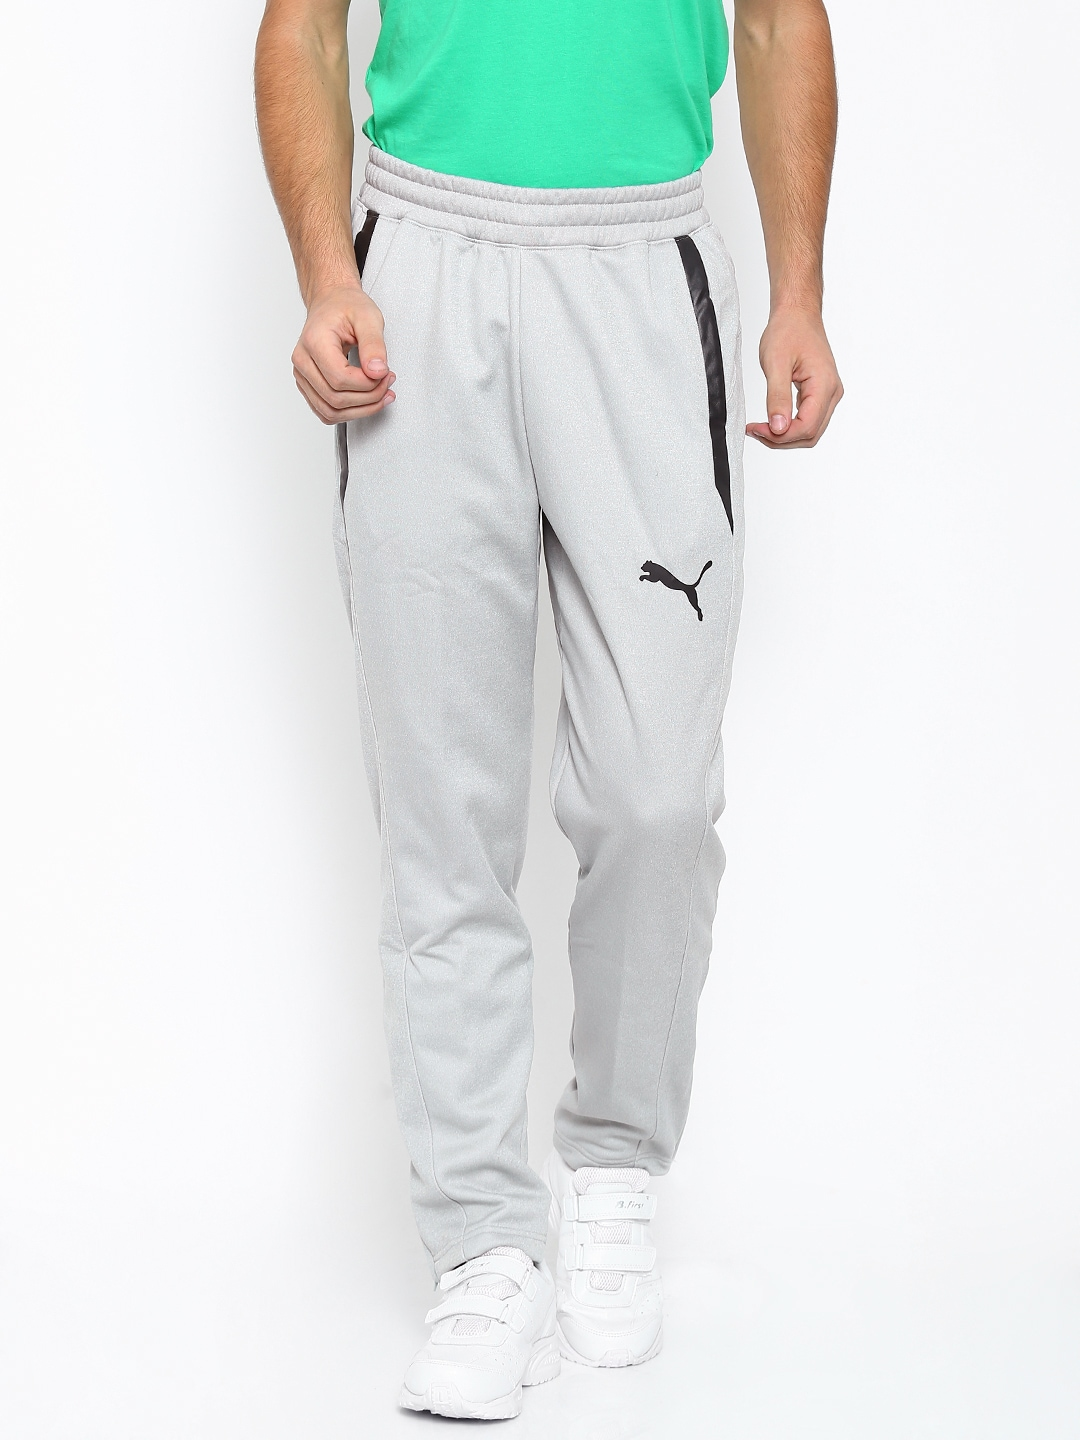 2df590ccfbcd Puma Wristbands Headband Track Pants Pants - Buy Puma Wristbands Headband Track  Pants Pants online in India